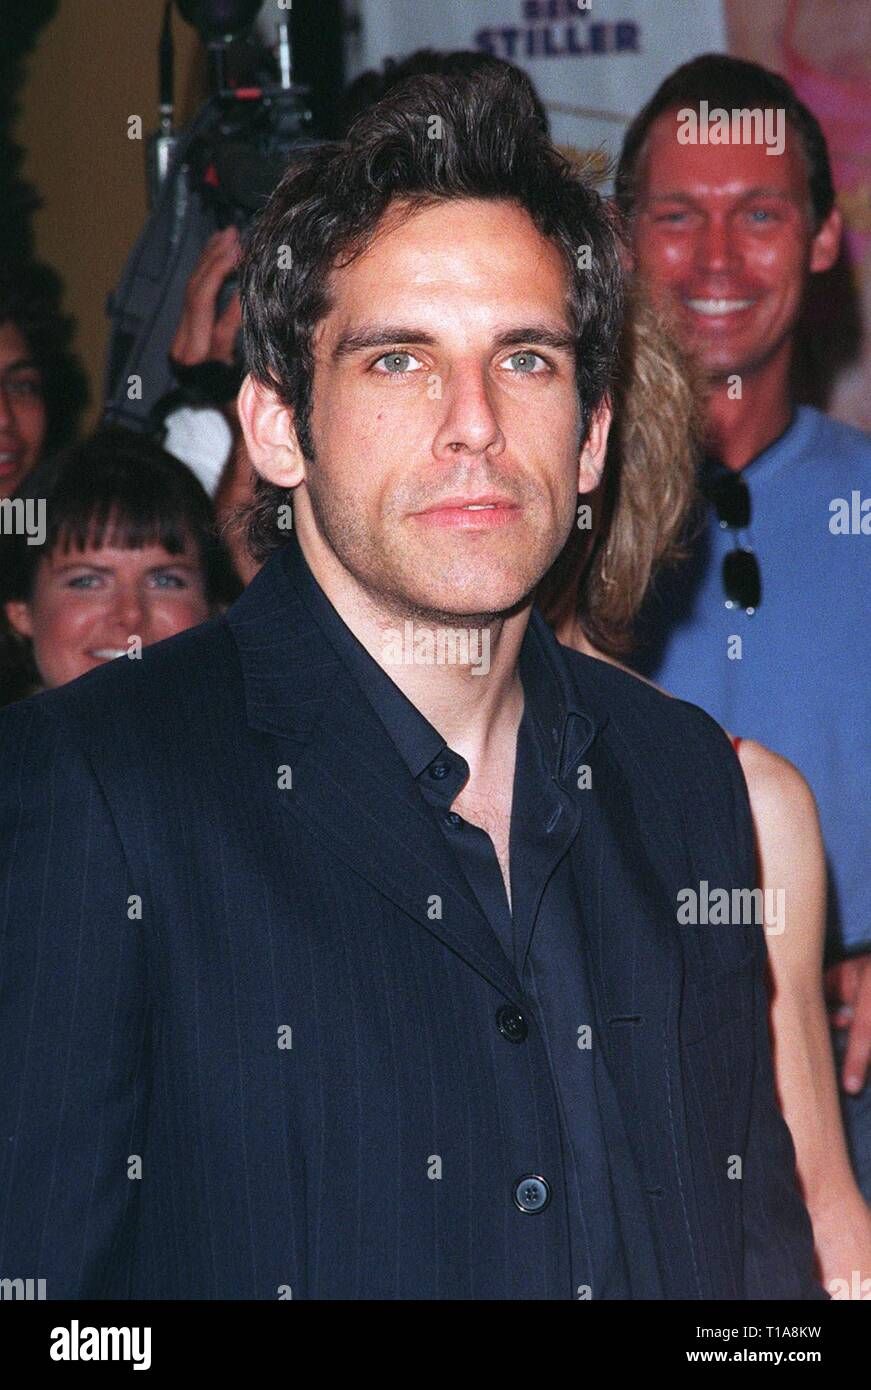 LOS ANGELES, CA - July 9, 1998: Actor BEN STILLER at the world premiere, in Los Angeles, of his new movie 'There's Something About Mary.' - Stock Image